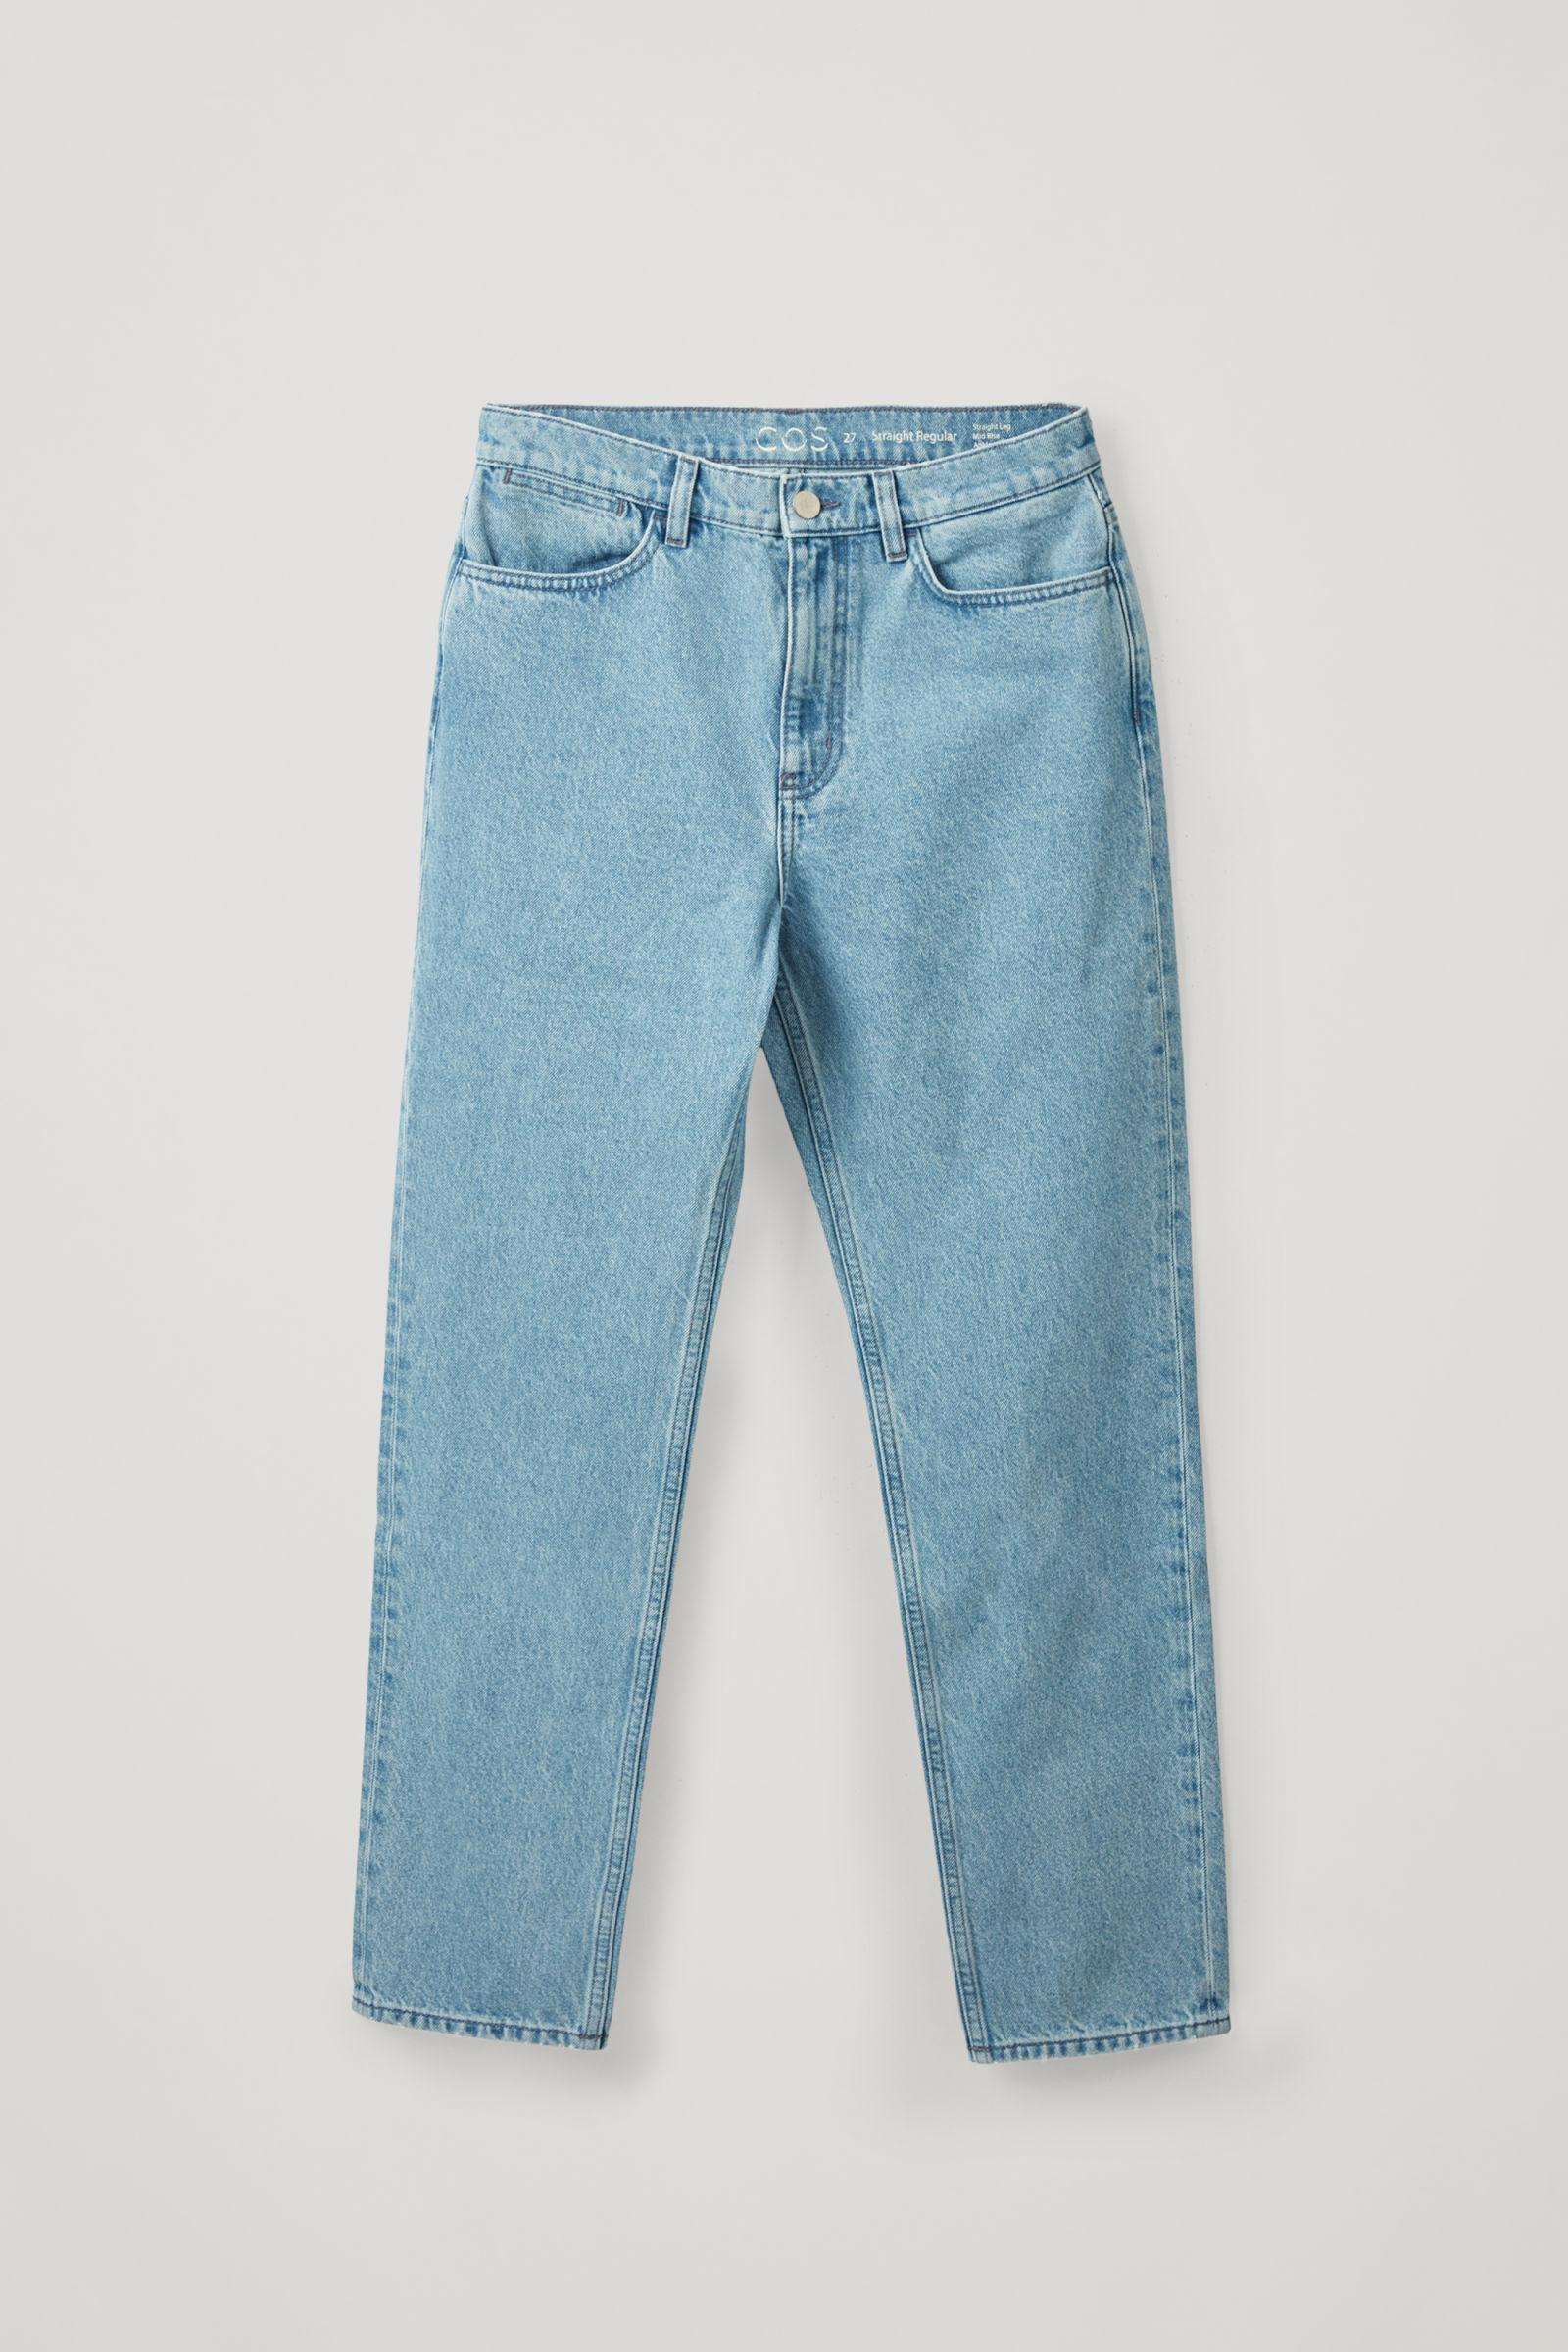 CROPPED STRAIGHT JEANS 6